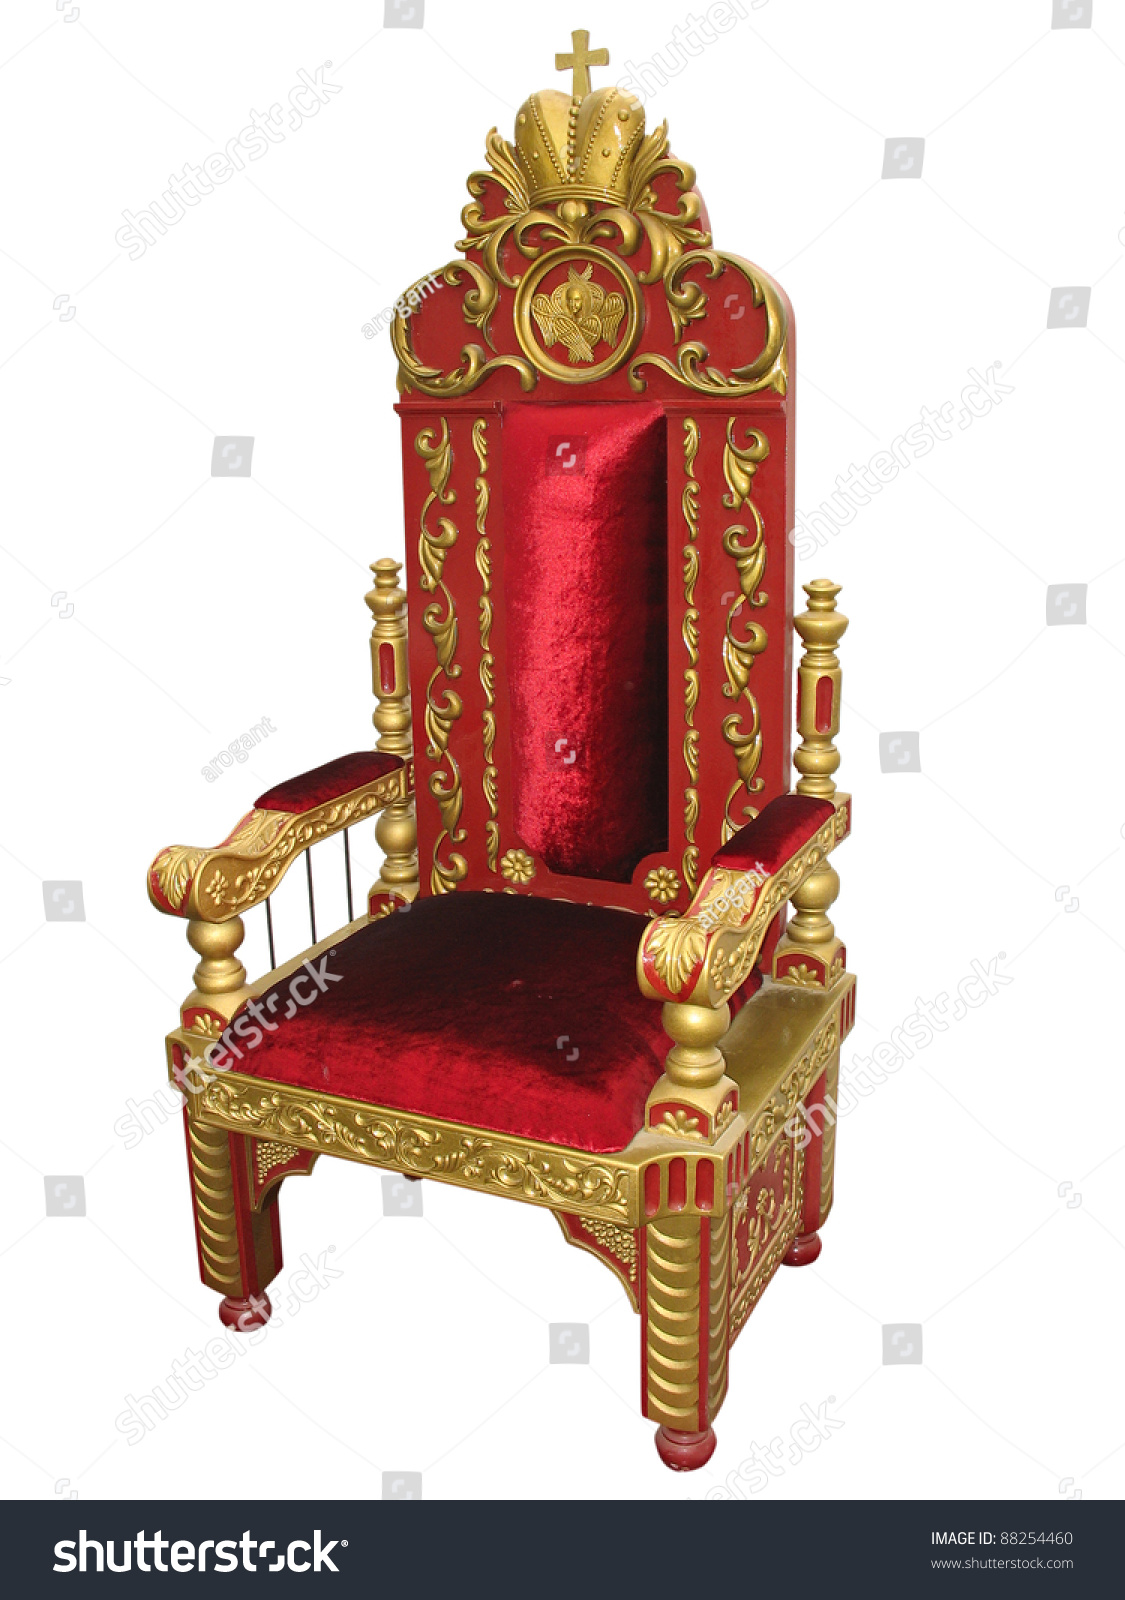 And queen chairs on pinterest throne chair king chair and chairs - Black Royal Throne Chair Www Galleryhip Com The